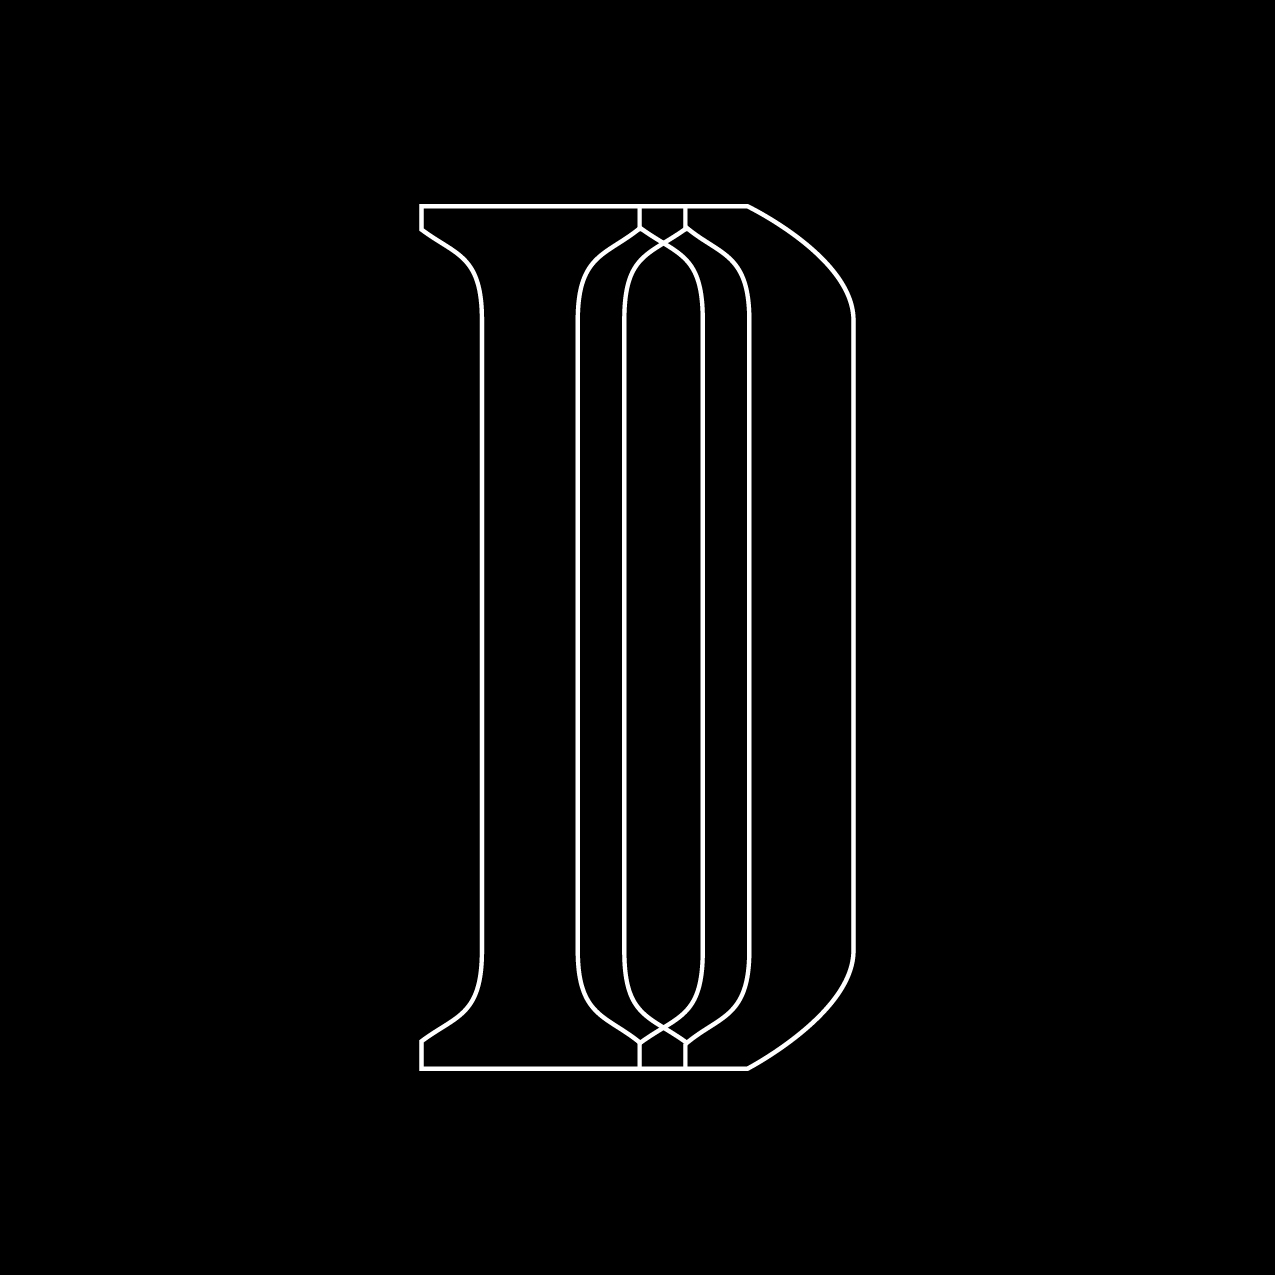 Letter D7 design by Furia